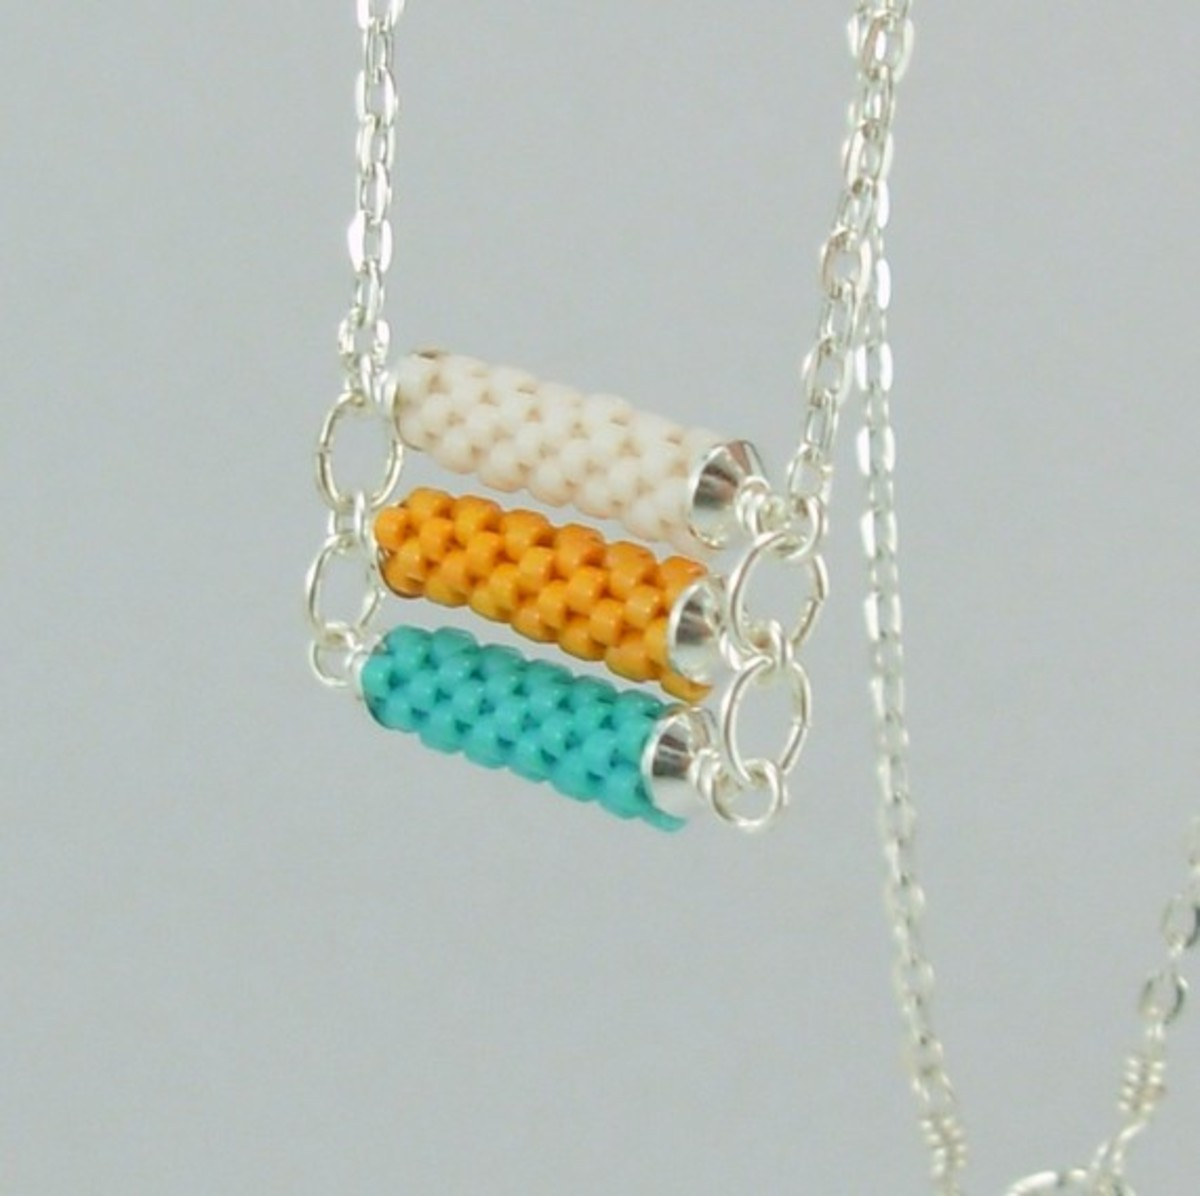 3 tier Beadwoven necklace in turquoise, orange and white: Combine several beaded beads with wire work to create stunning pieces like this one.